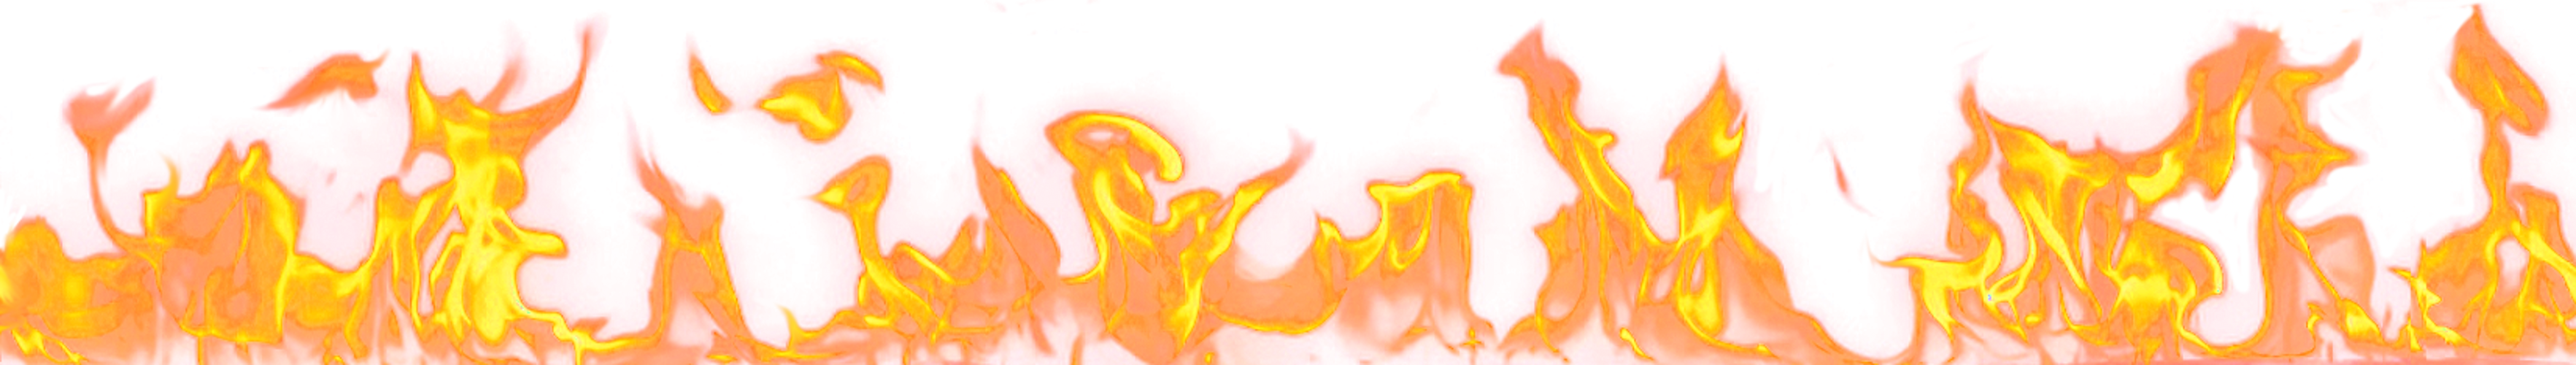 Fire Flames Clipart Photo 18